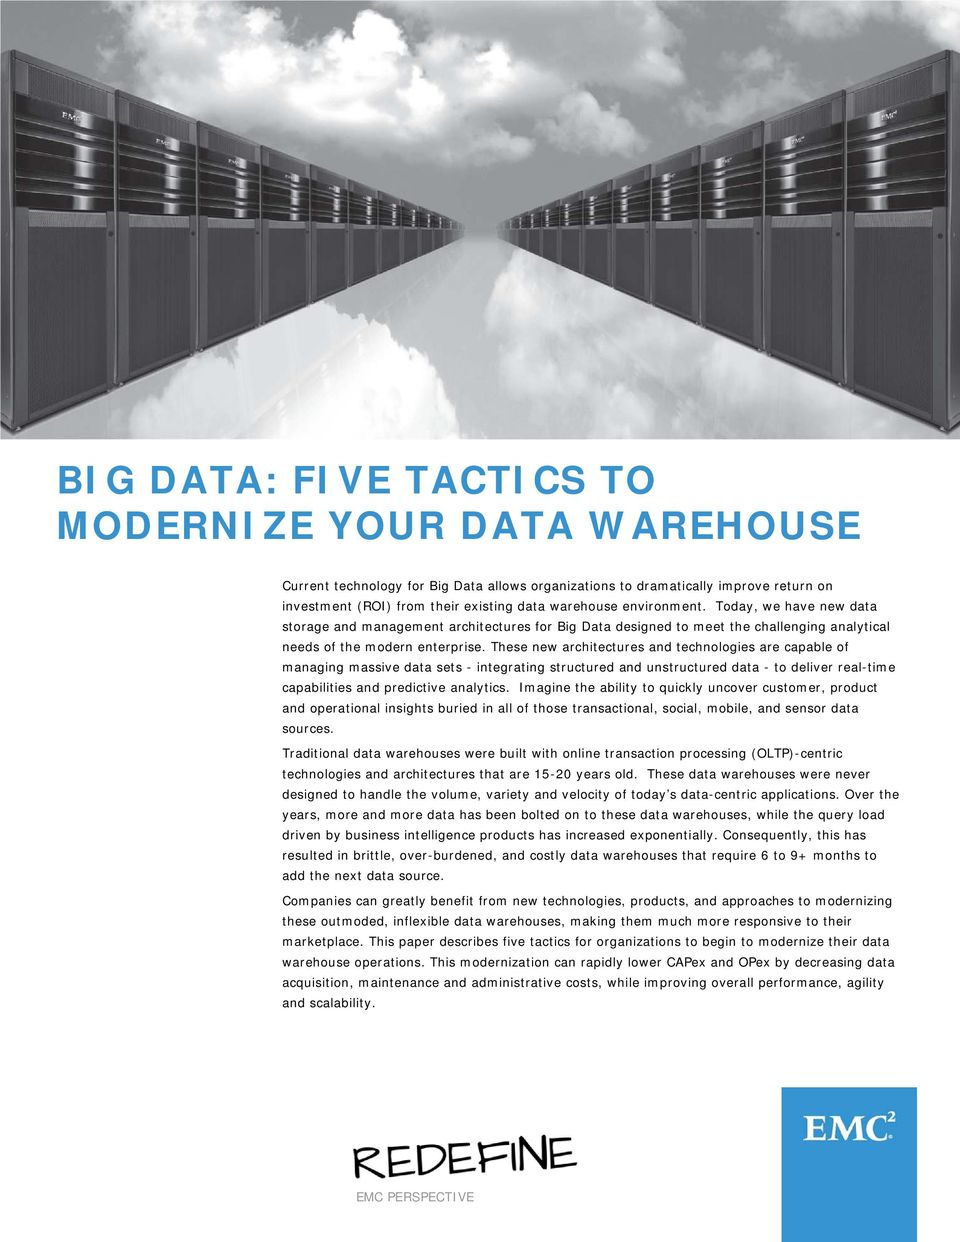 These new architectures and technologies are capable of managing massive data sets - integrating structured and unstructured data - to deliver real-time capabilities and predictive analytics.